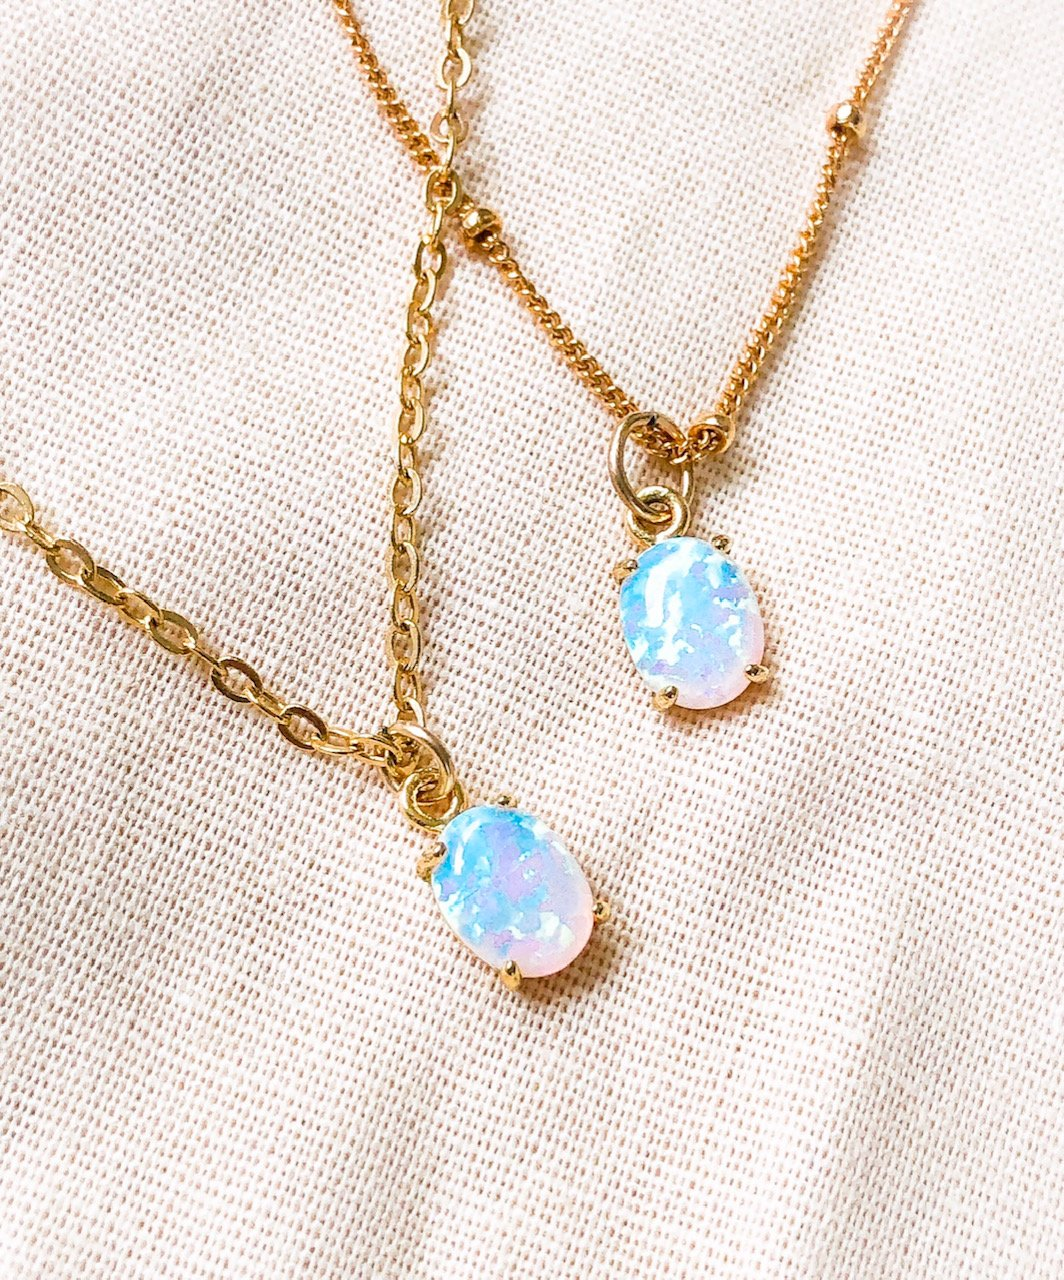 14K Gold Filled Satellite Necklace with Oval Synthetic Opal Pendant